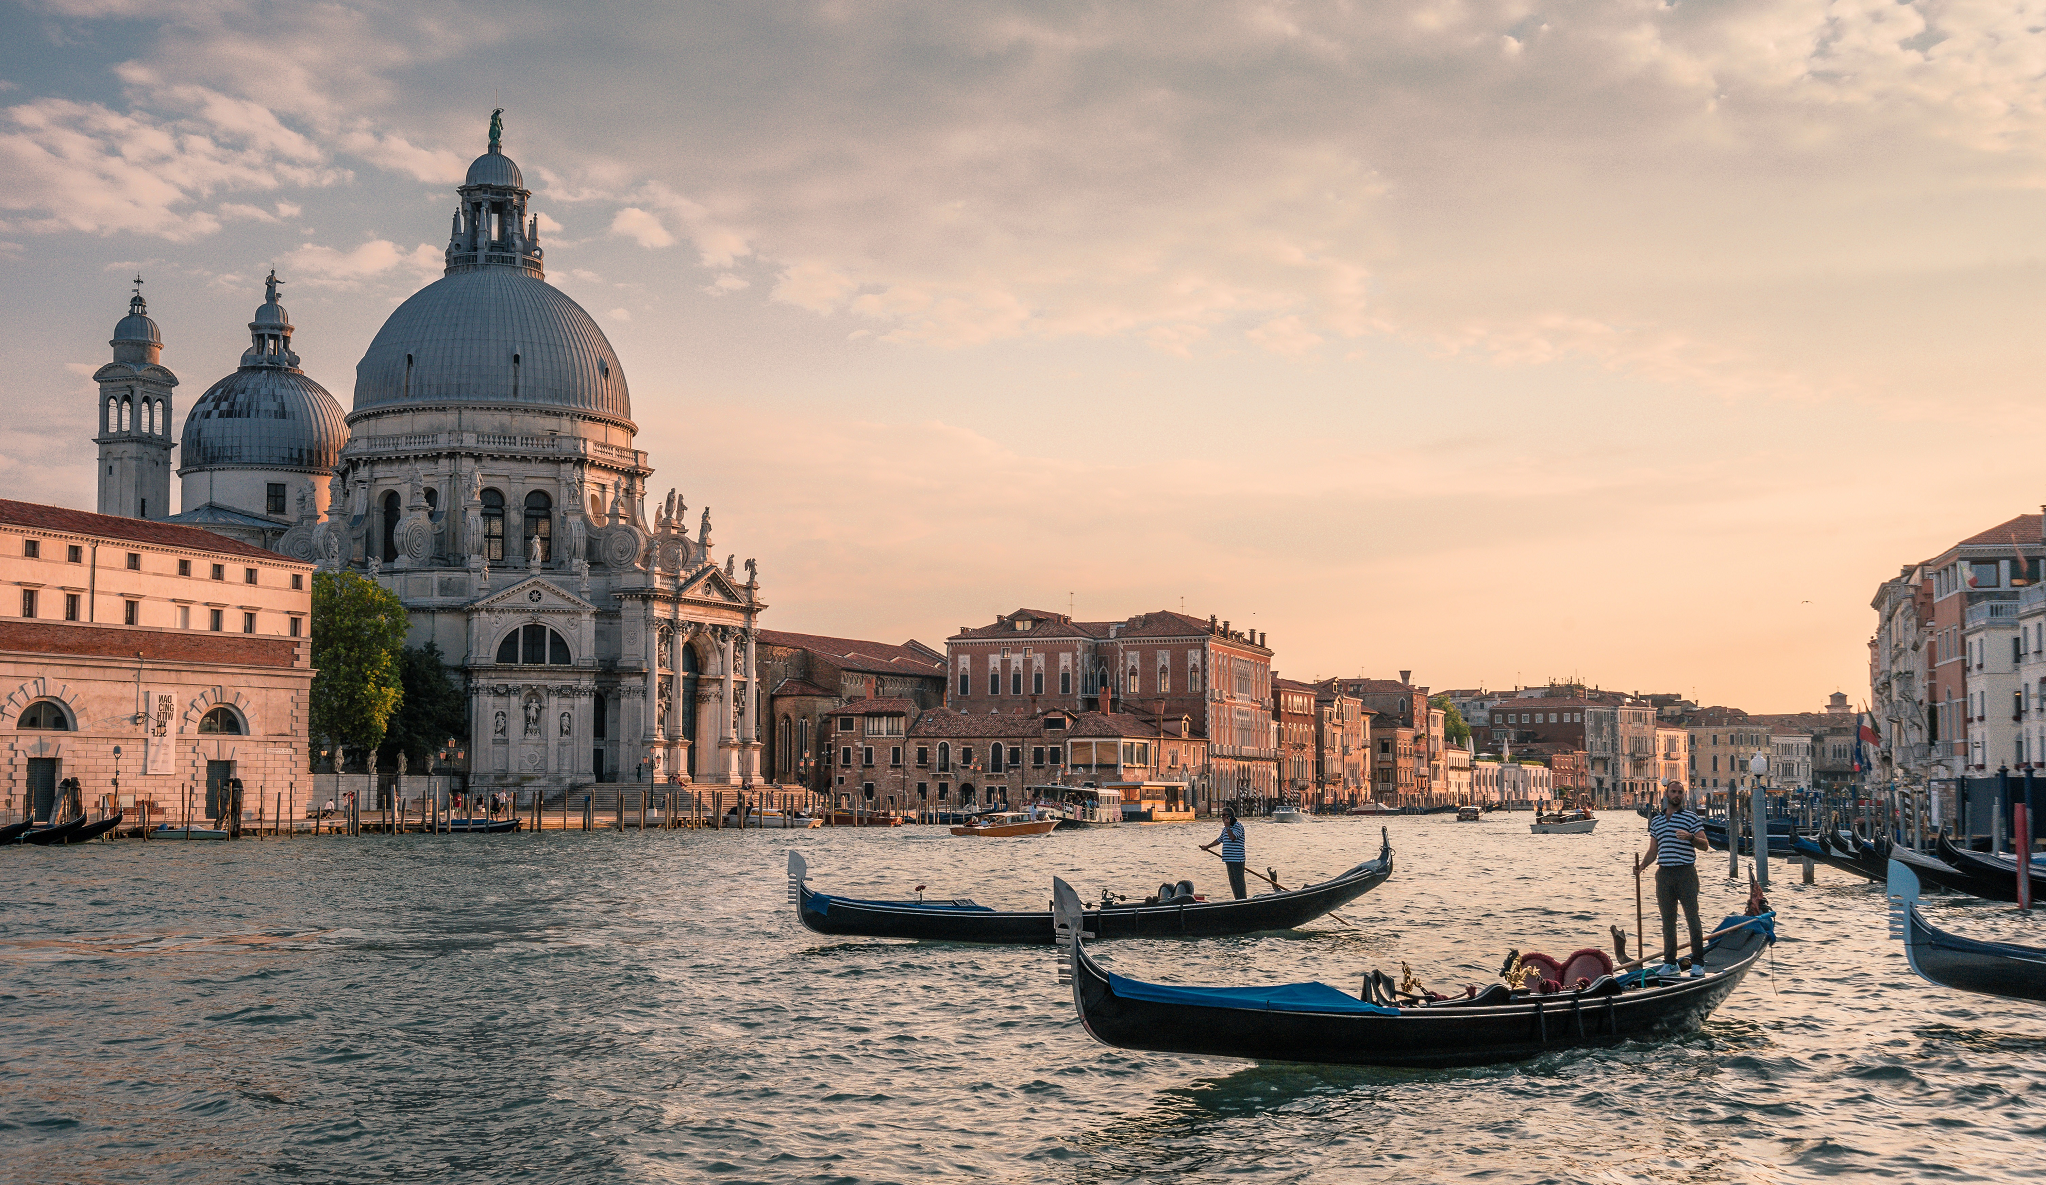 Venice - main canal with gondolas and city in the background